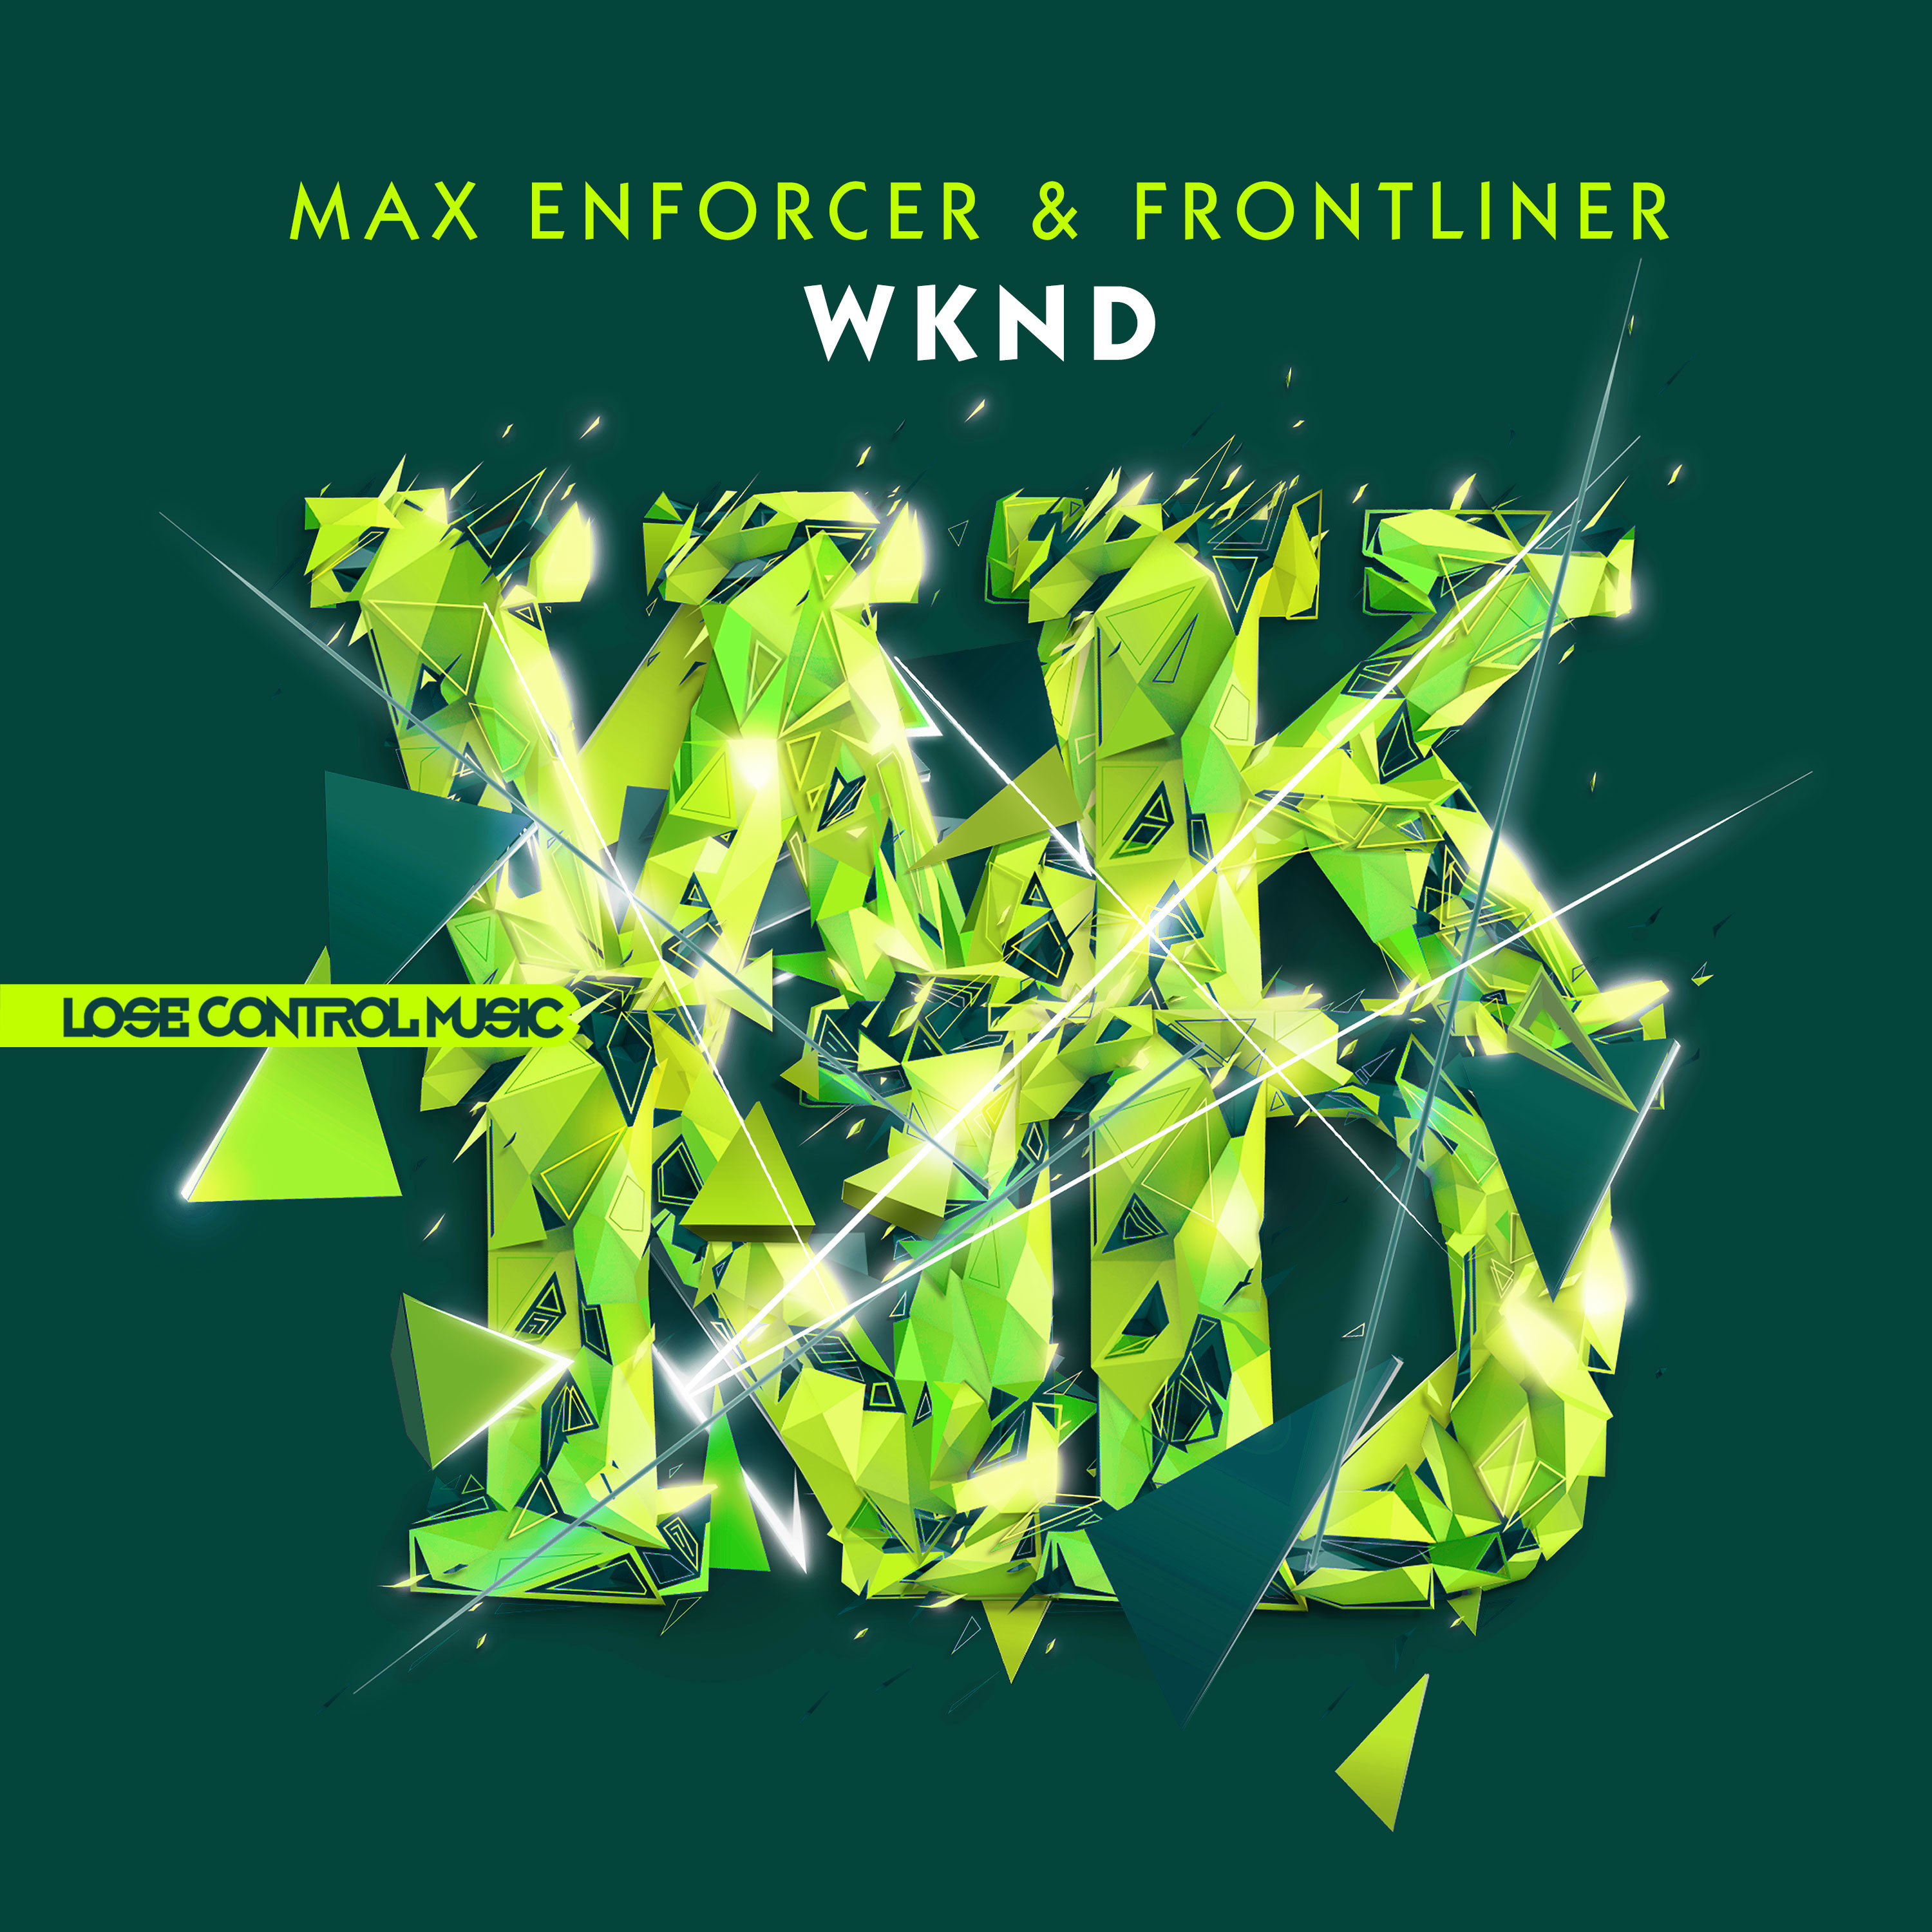 Max Enforcer & Frontliner - WKND [LOSE CONTROL MUSIC] LCM022